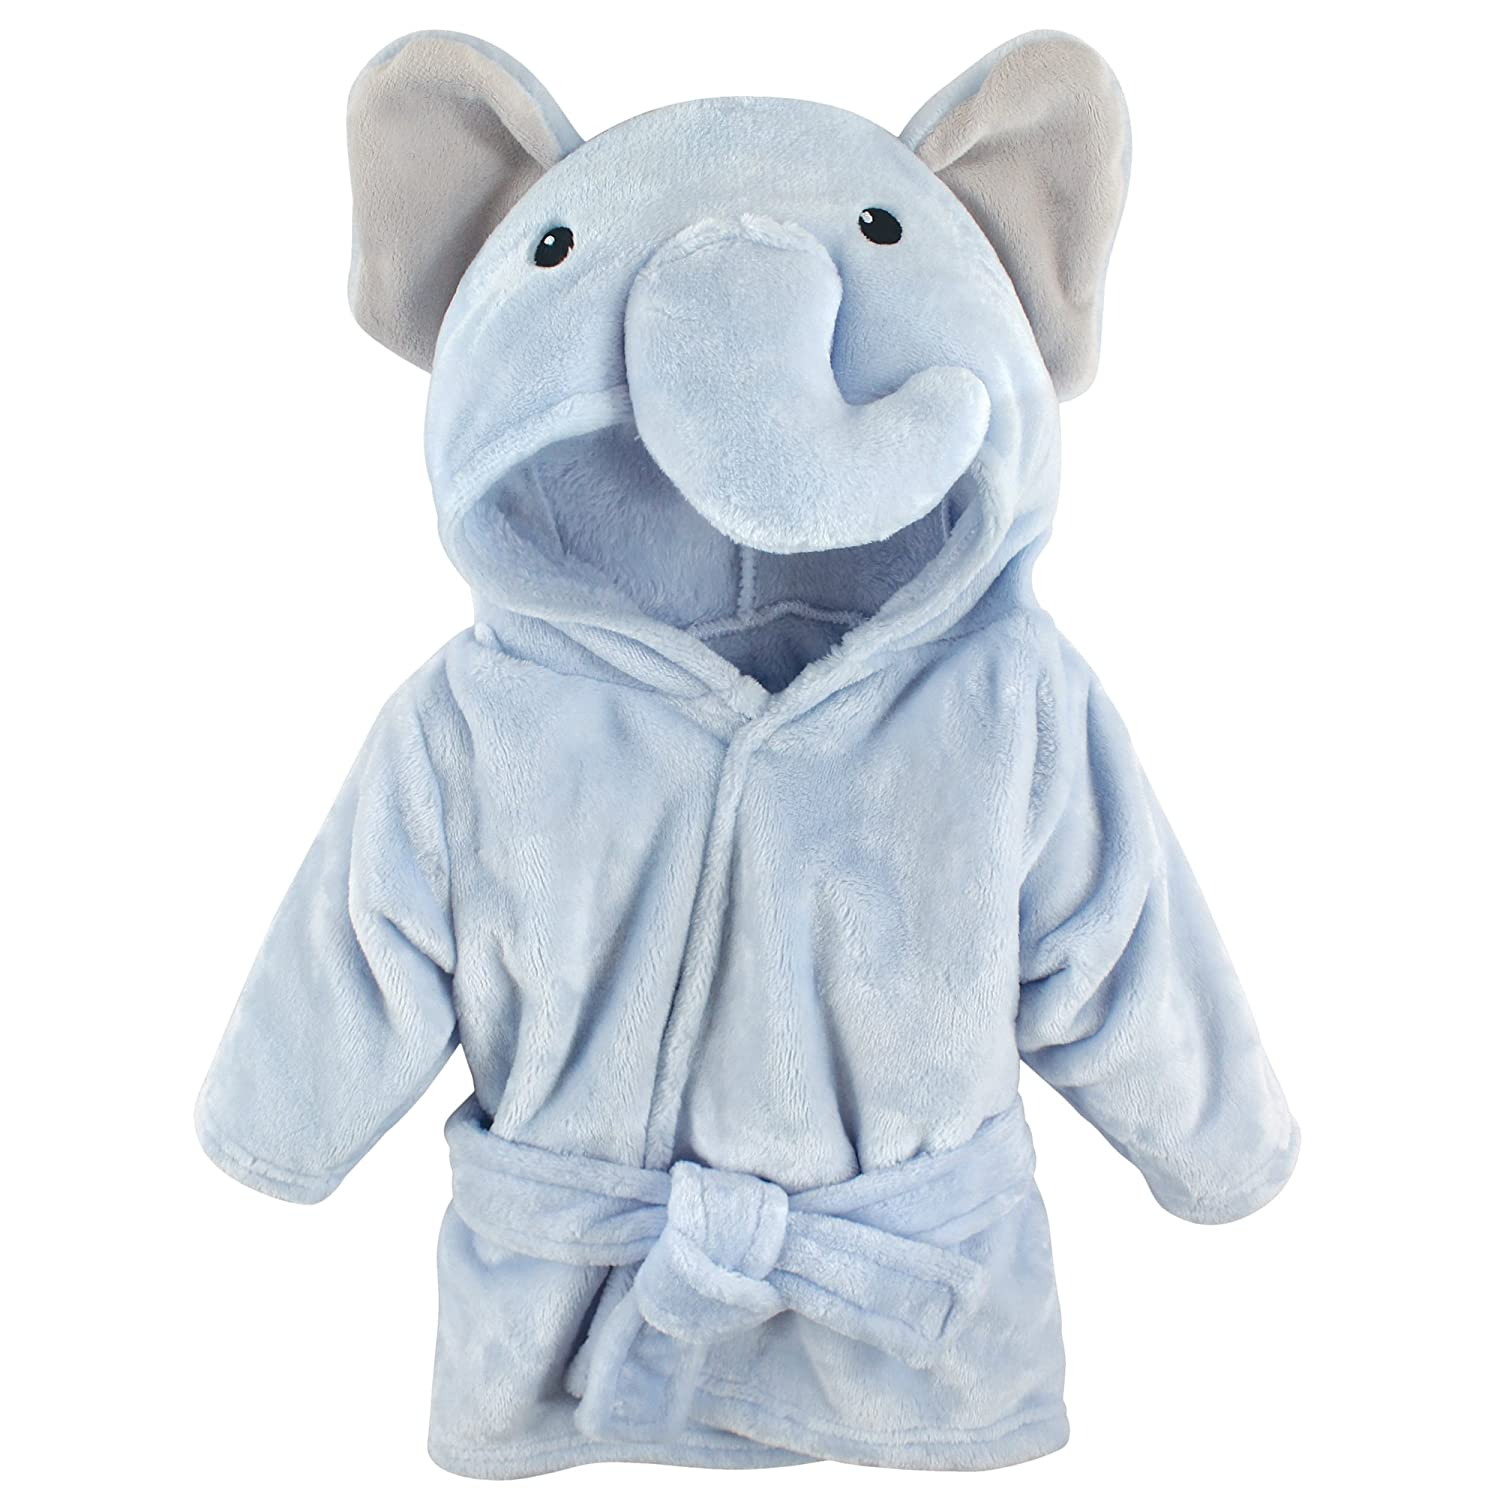 Hudson Baby Unisex Baby Plush Animal Face Robe, Blue Elephant, One Size, 0-9 Months: Baby